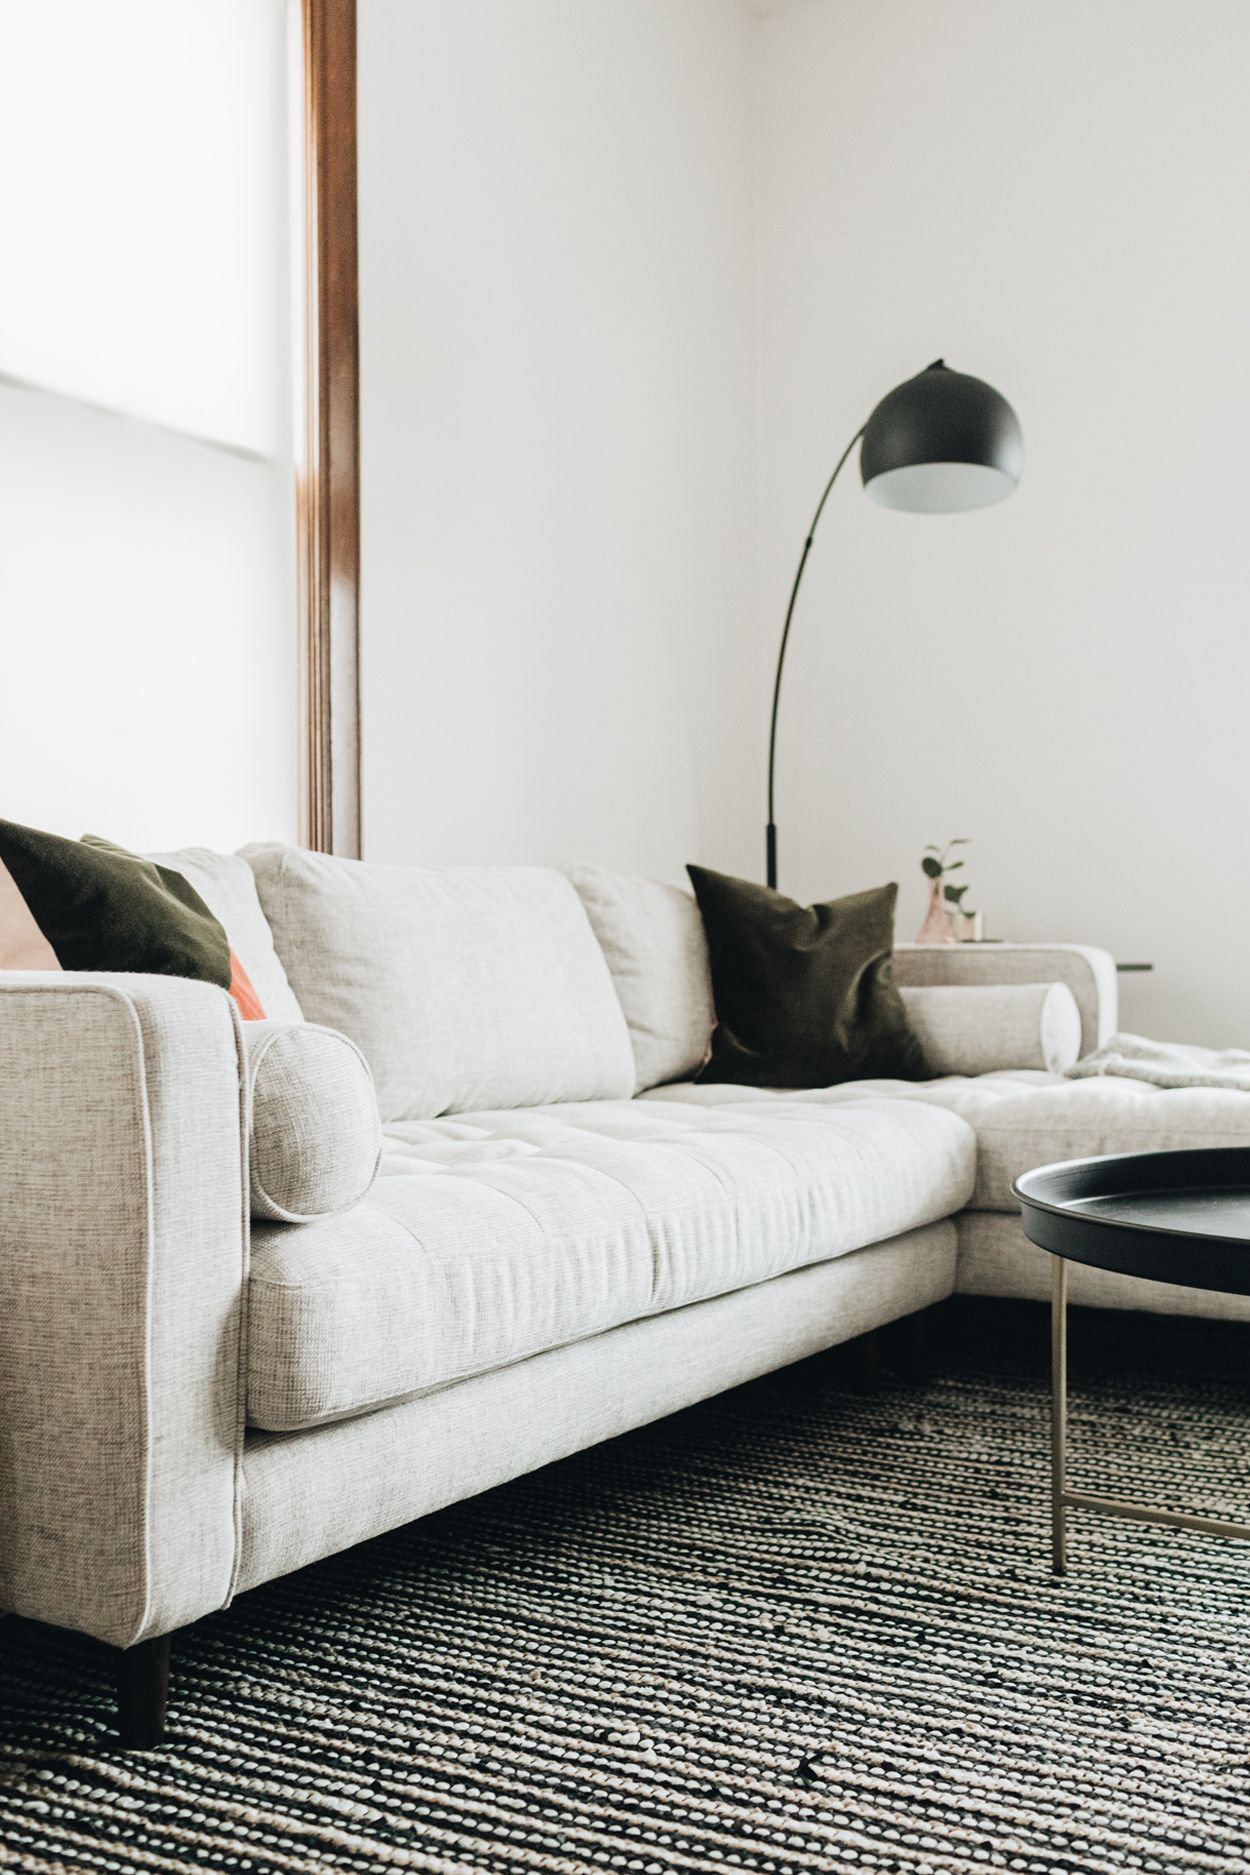 Awesome Sven Birch Ivory Right Sectional Sofa In 2019 Sectional Creativecarmelina Interior Chair Design Creativecarmelinacom